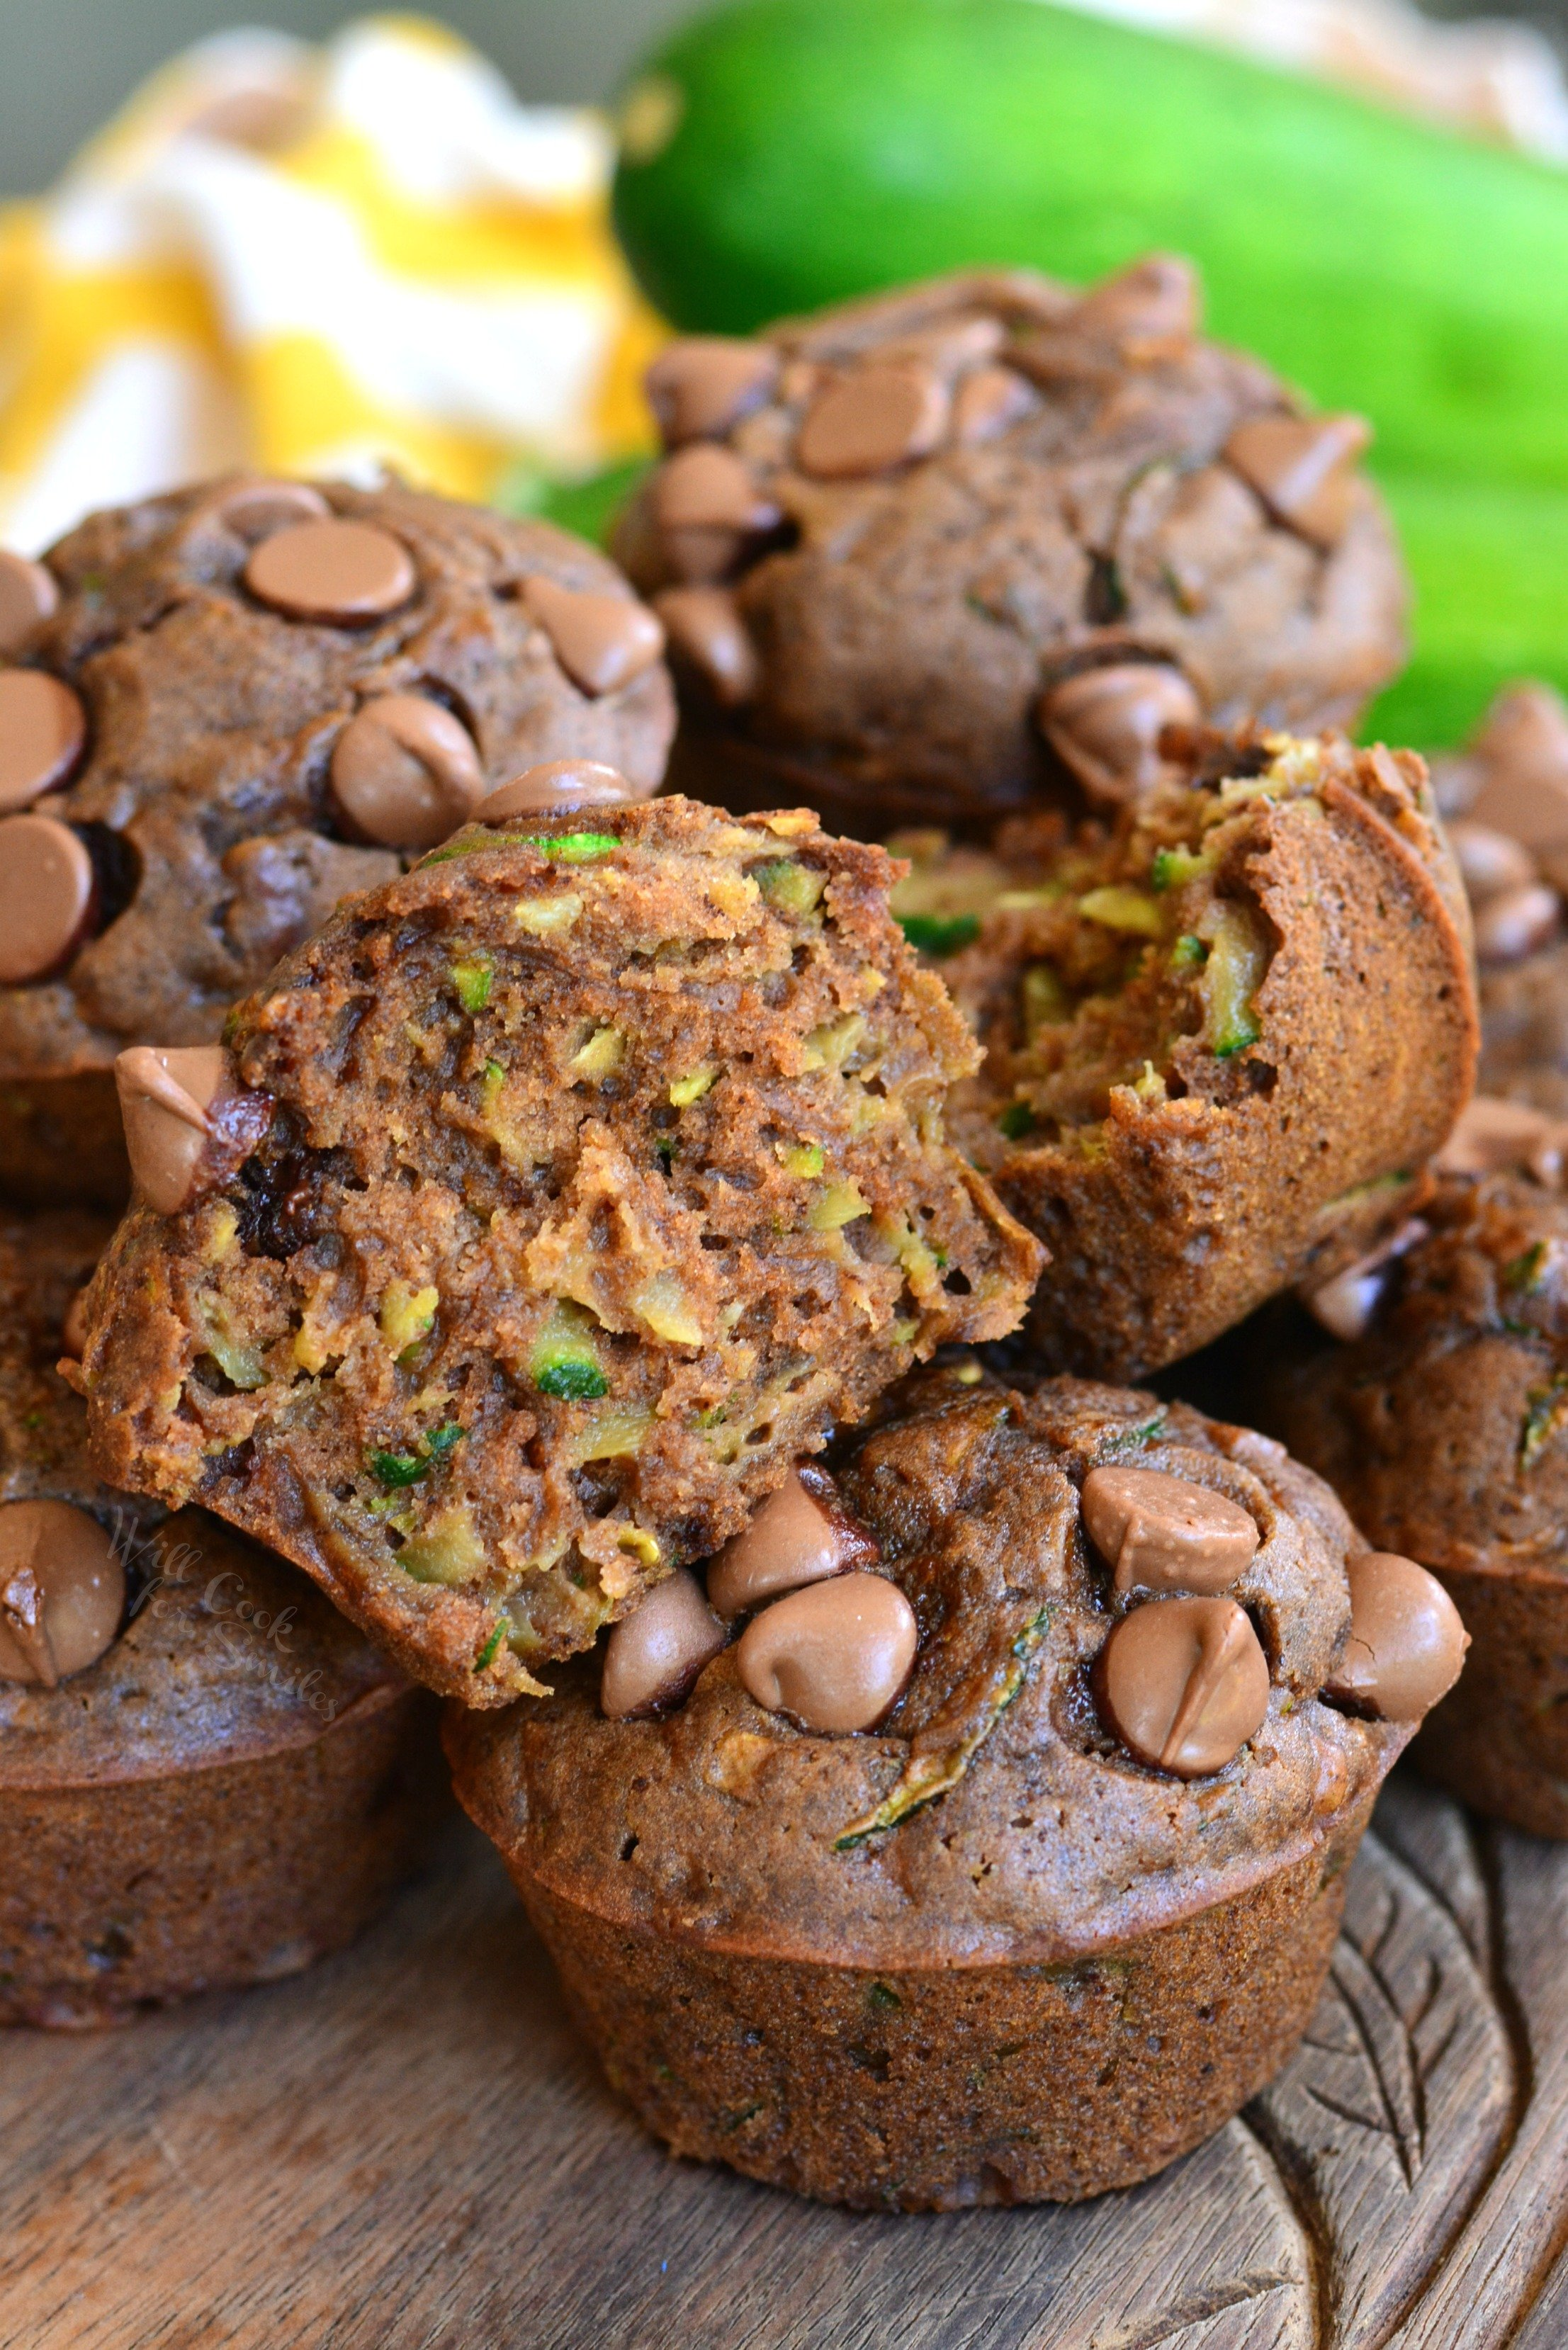 Easy Dark Chocolate Zucchini Muffins make a perfect breakfast, snack, and brunch! It only takes 5 minutes to prep and 20 minutes to bake these rich and moist chocolate zucchini muffins. #zucchini #muffins #chocolate #breakfast #snack #brunch